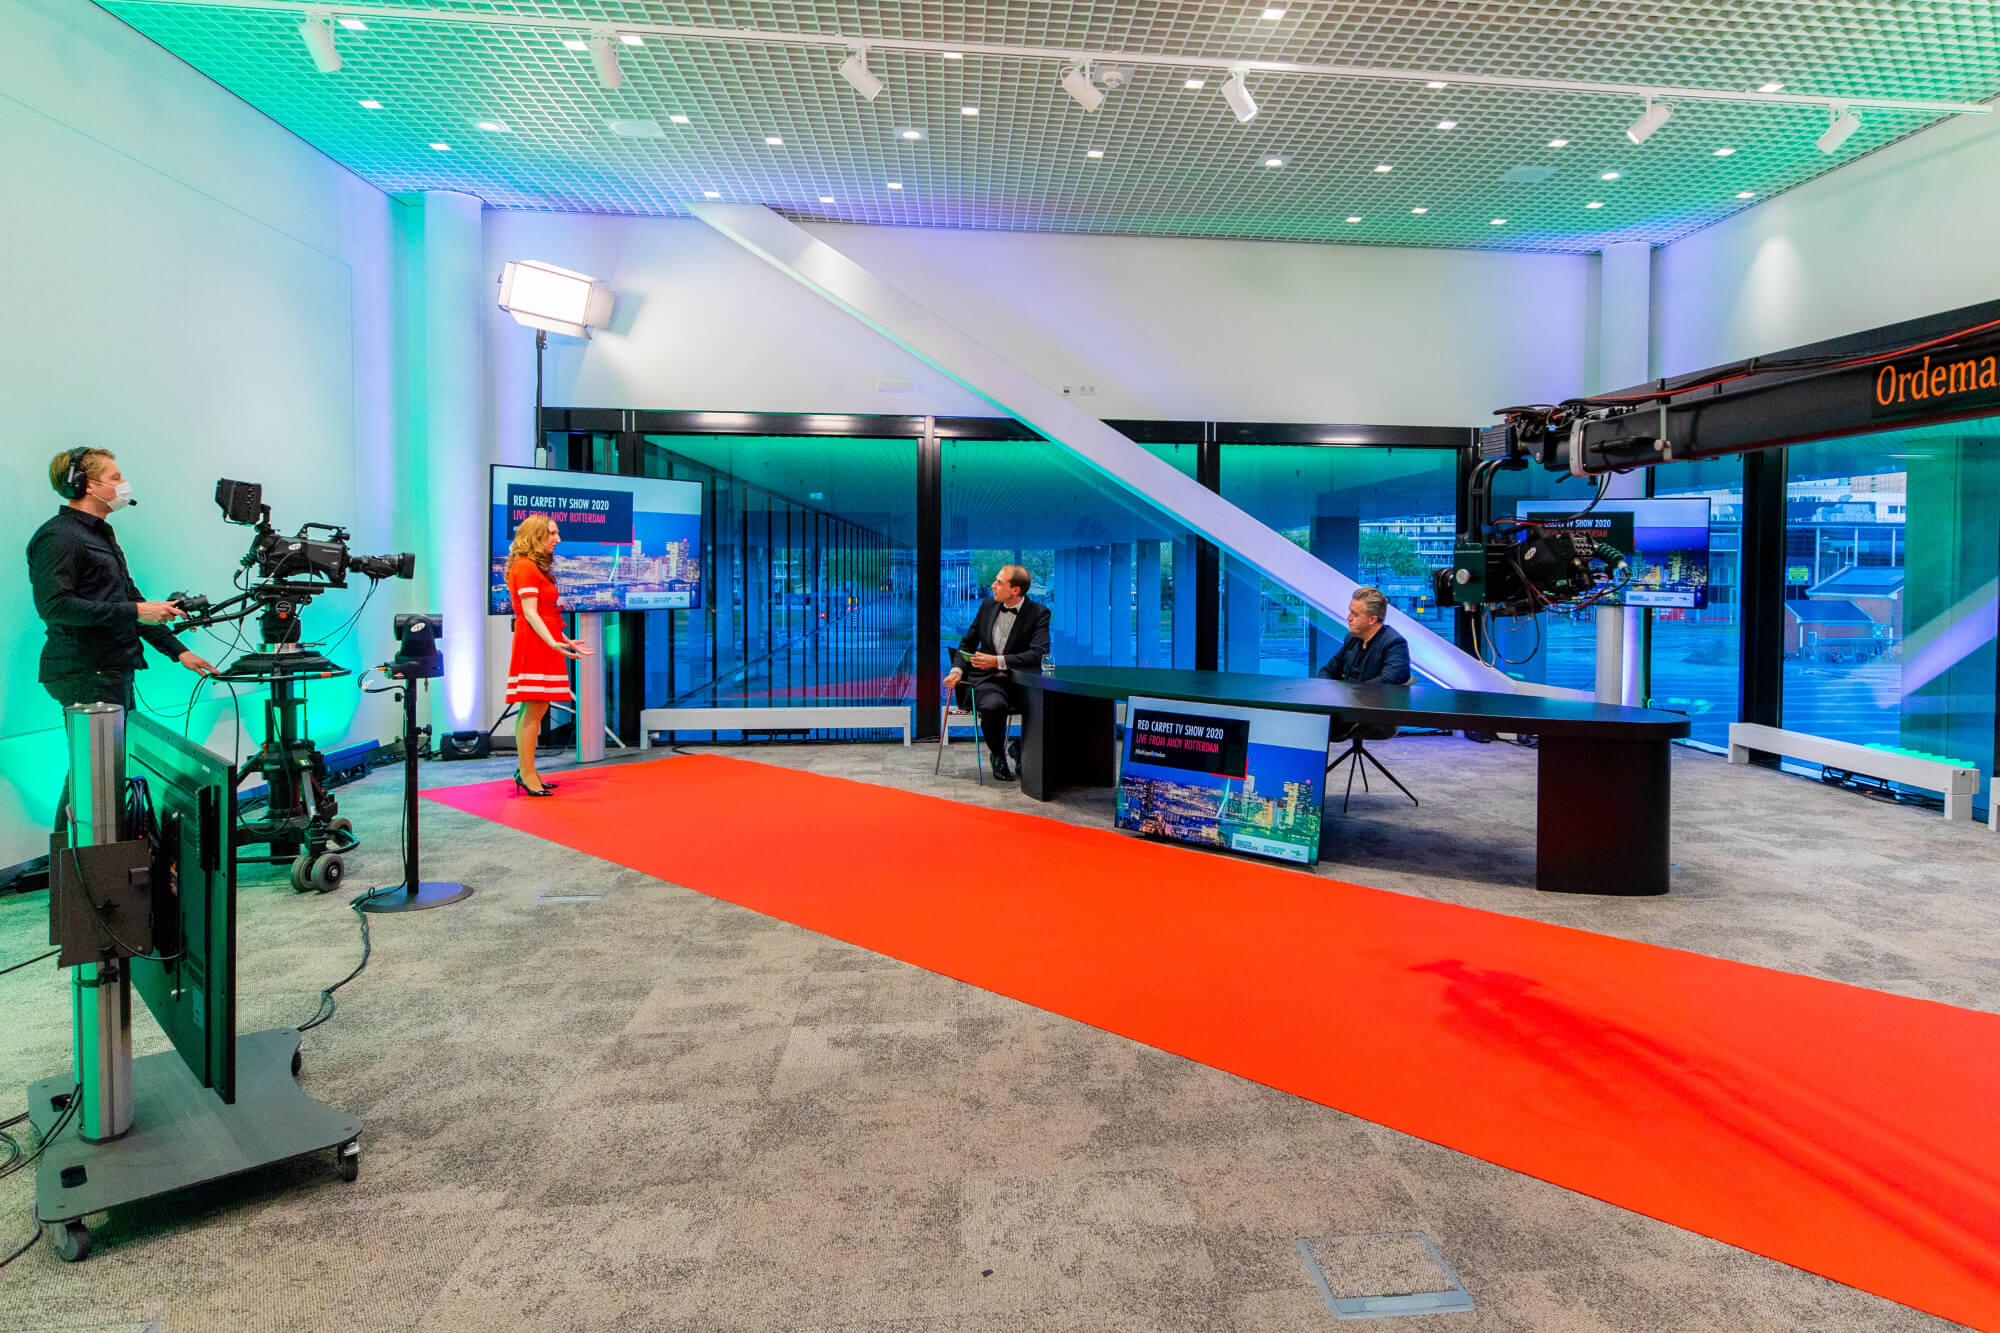 Rotterdam rolls out the red carpet for international companies and entrepreneurs who come to our city. It's in the name of the show and it was physically visible in the studio.